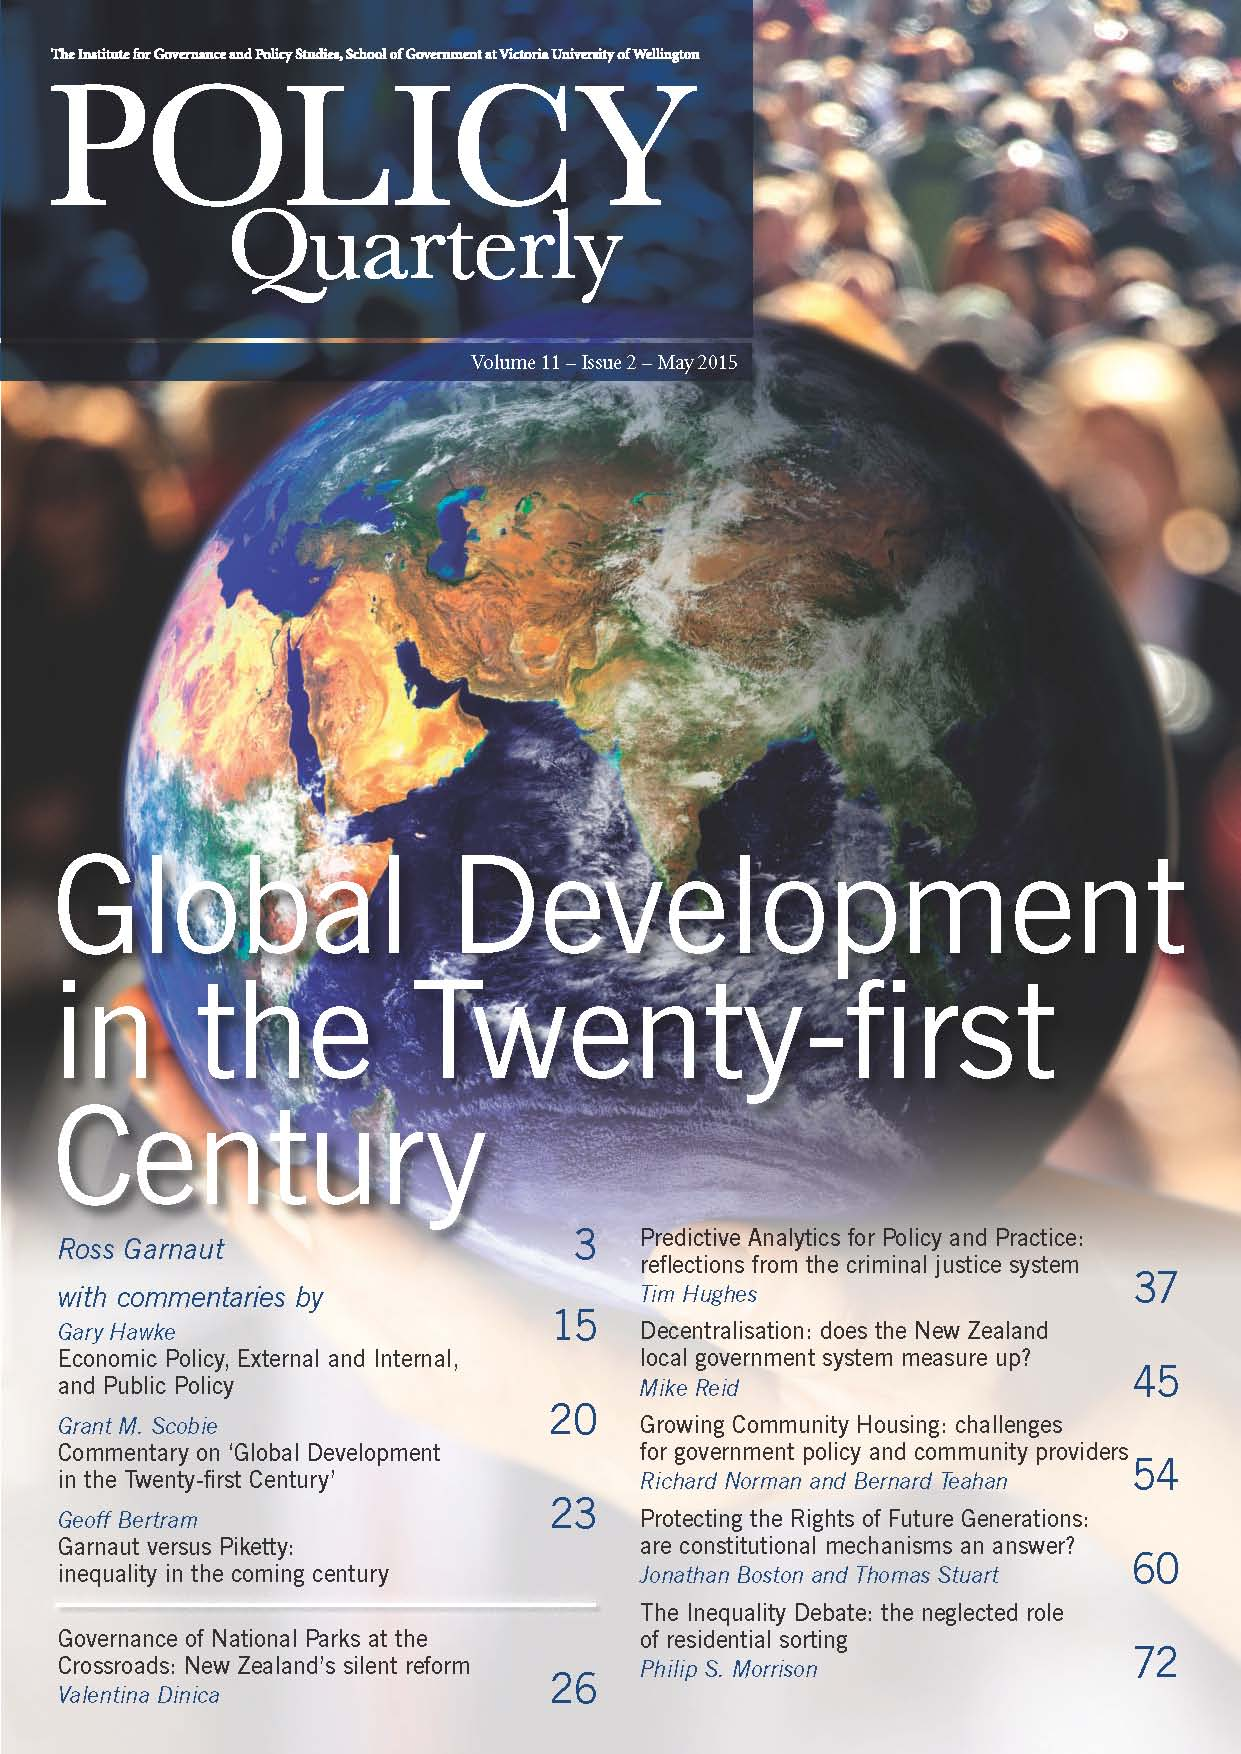 Policy Quarterly volume 11 issue 2 2015